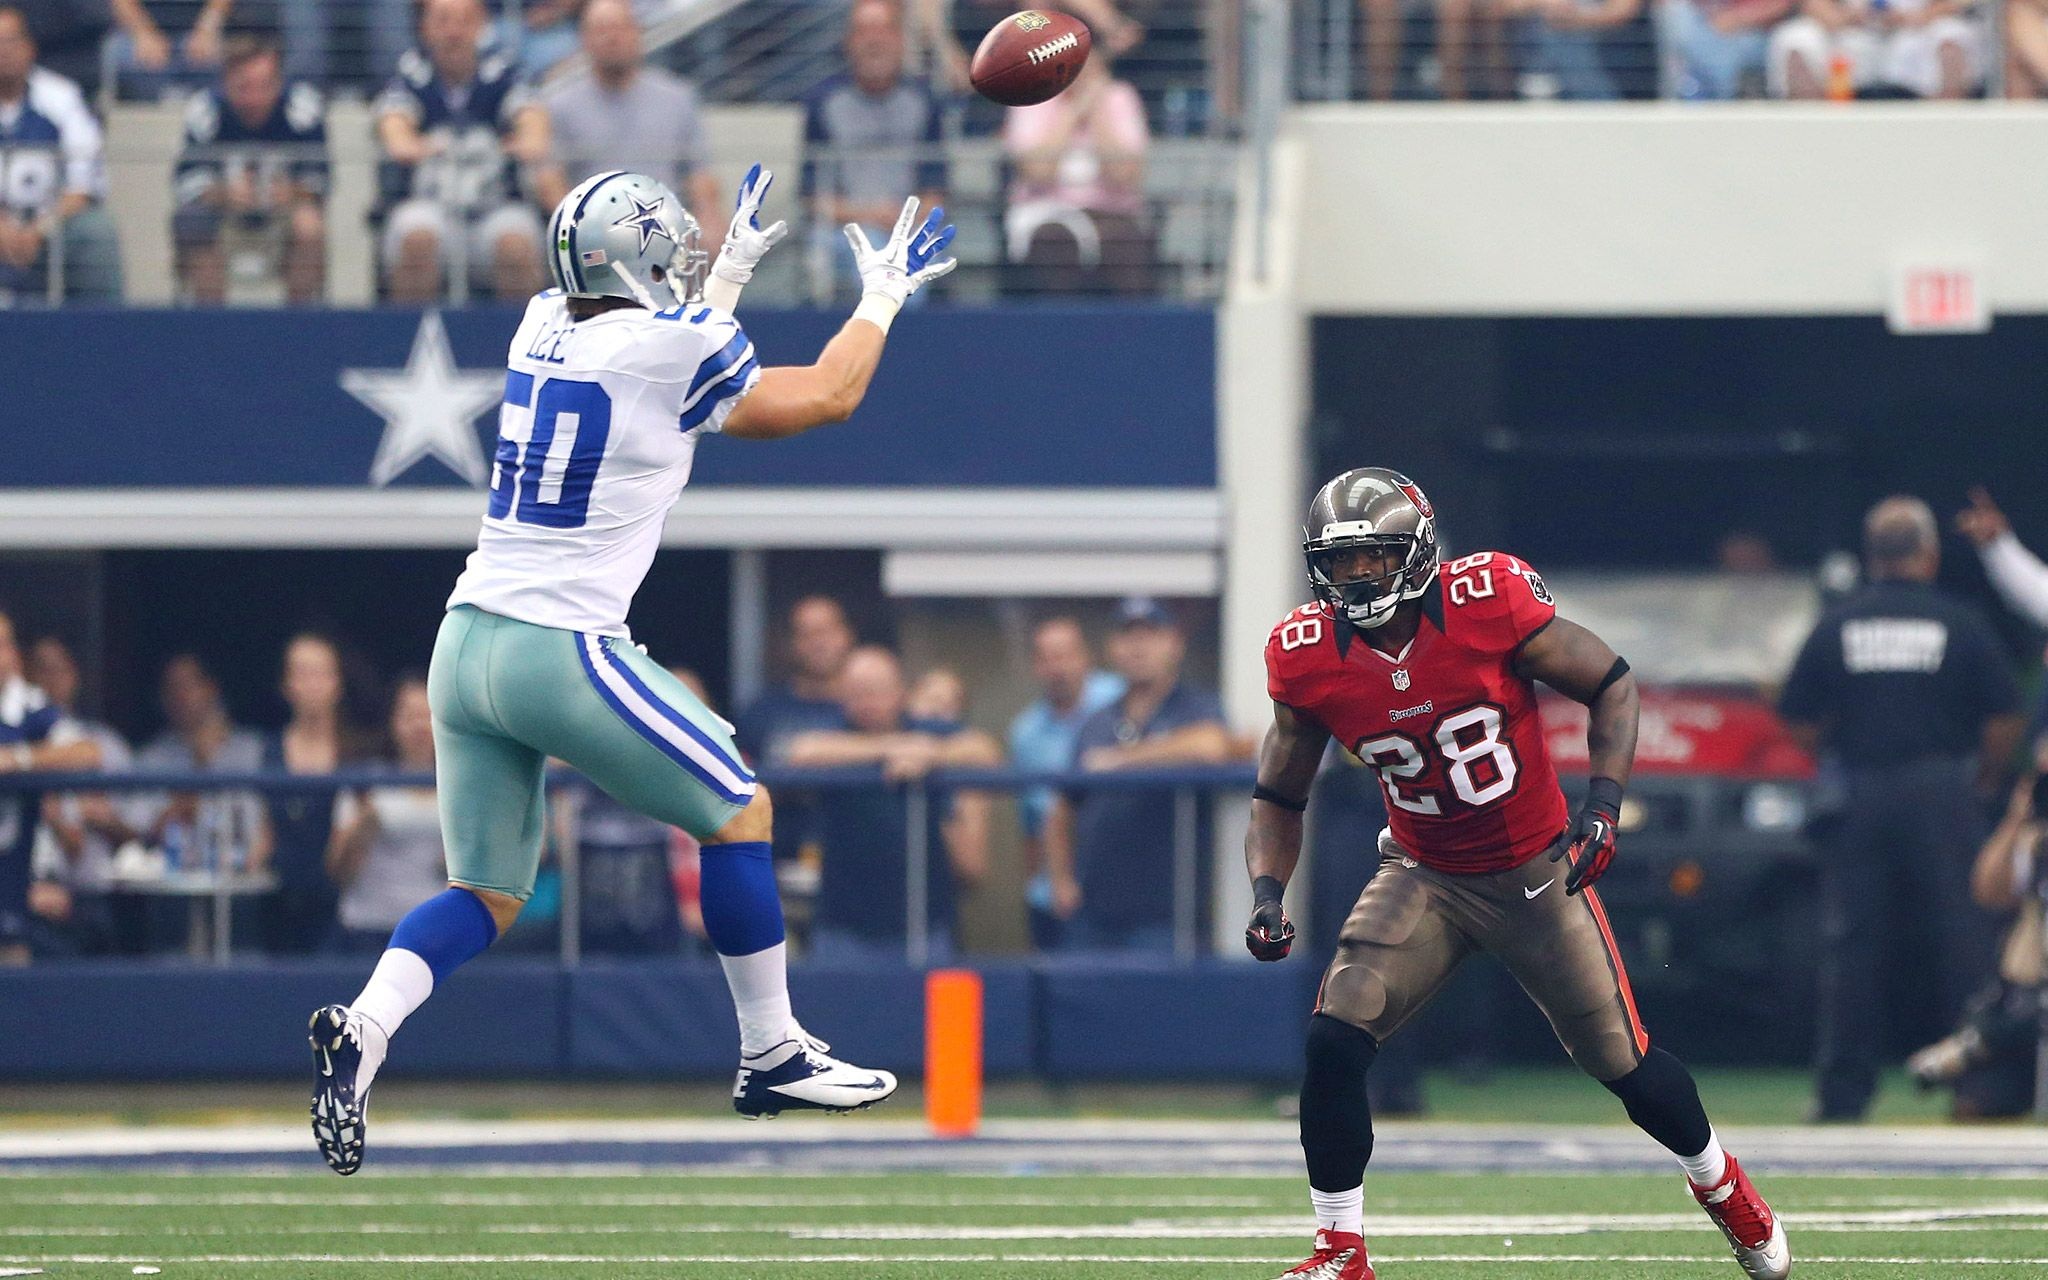 Pure happiness, Cowboys vs Bucs! Hubby & i were at this